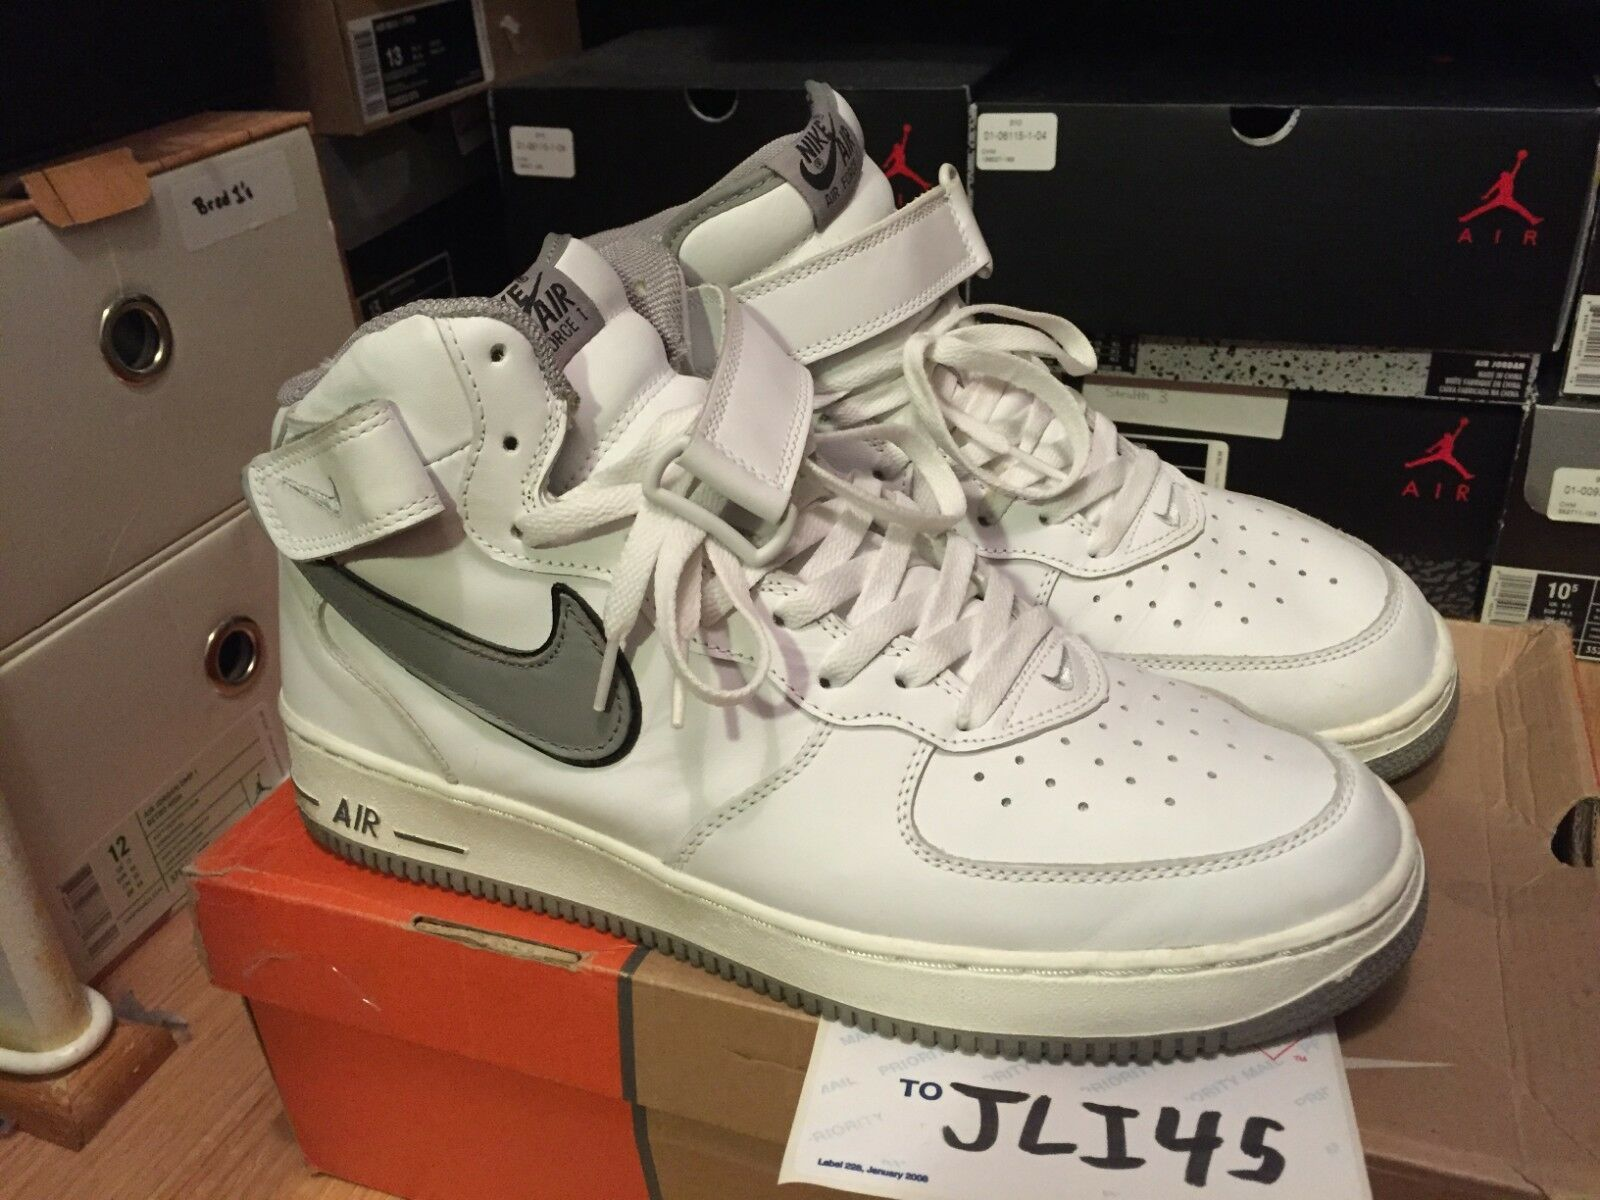 Nike Air Force 1 One Size 13 2004 Sneakers shoes Max Vapor Retro